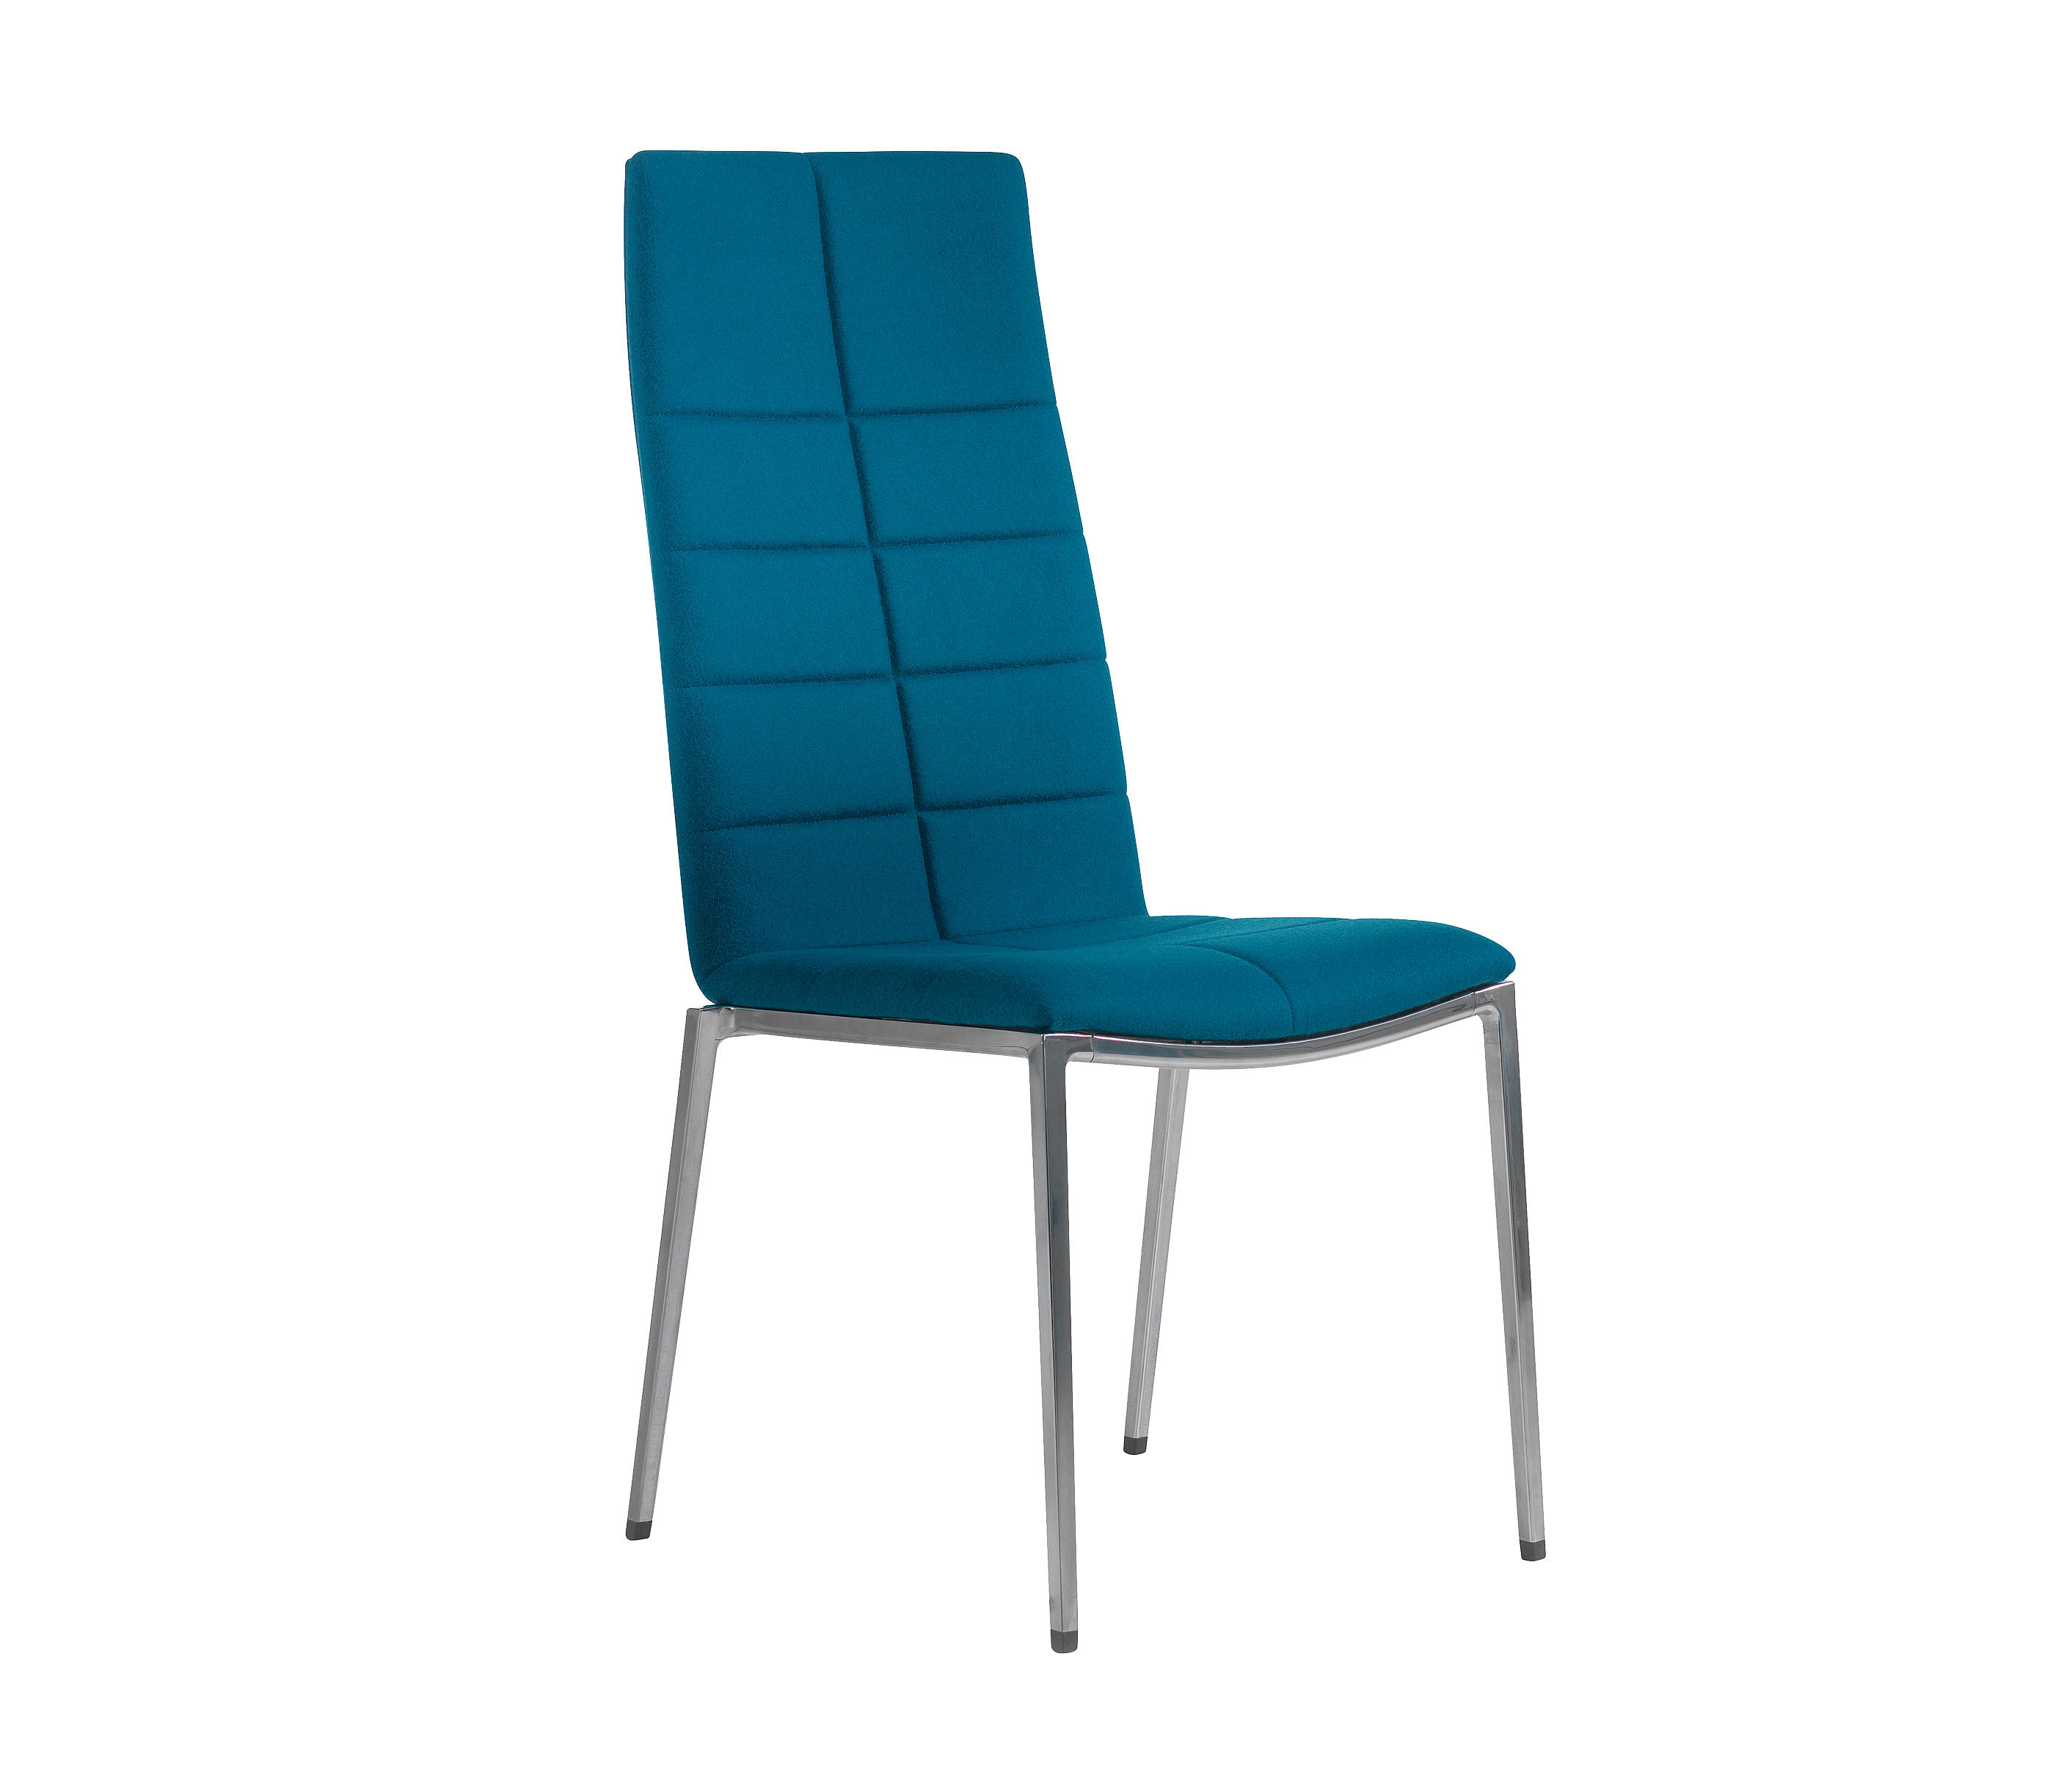 ARCHAL CHAIR 4 LEG Visitors chairs Side chairs from Lammhults